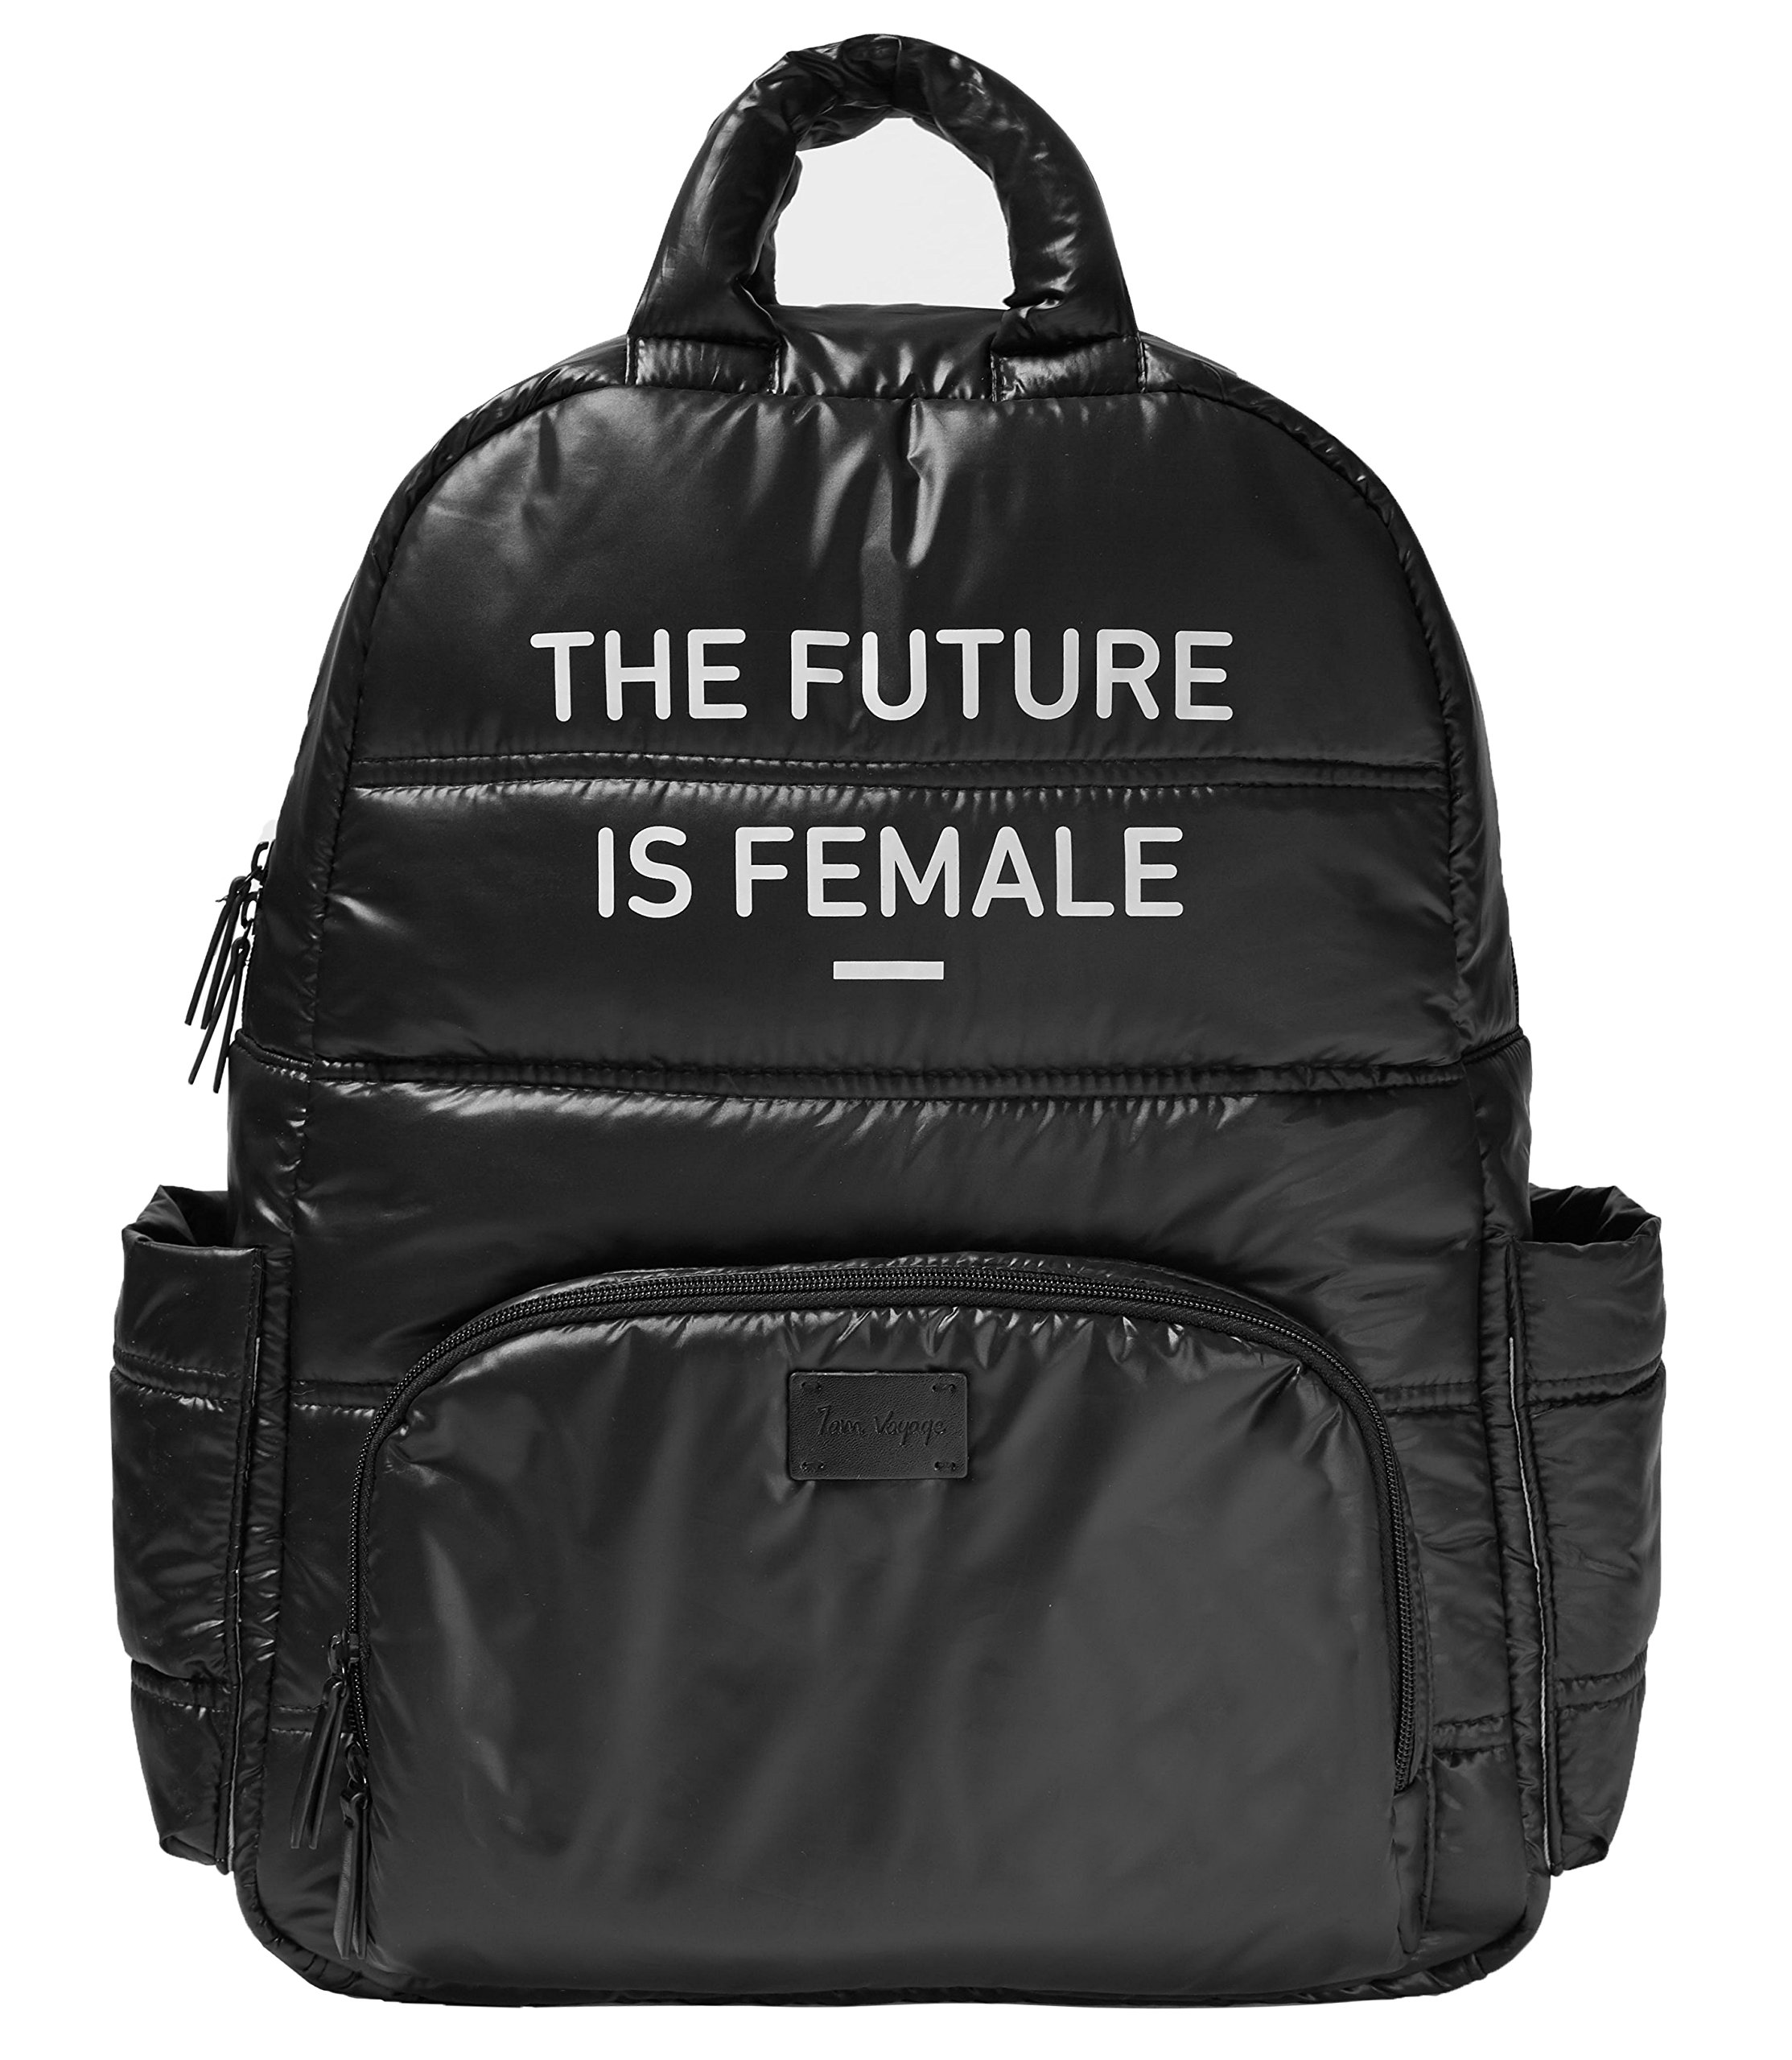 7AM Voyage Feminist Backpack Diaper Bag Version, Water Resistant, Travel Bag, Multi-Use, for Women and Men, Fits 15.6 Inch Laptop (Black, Puff Material)